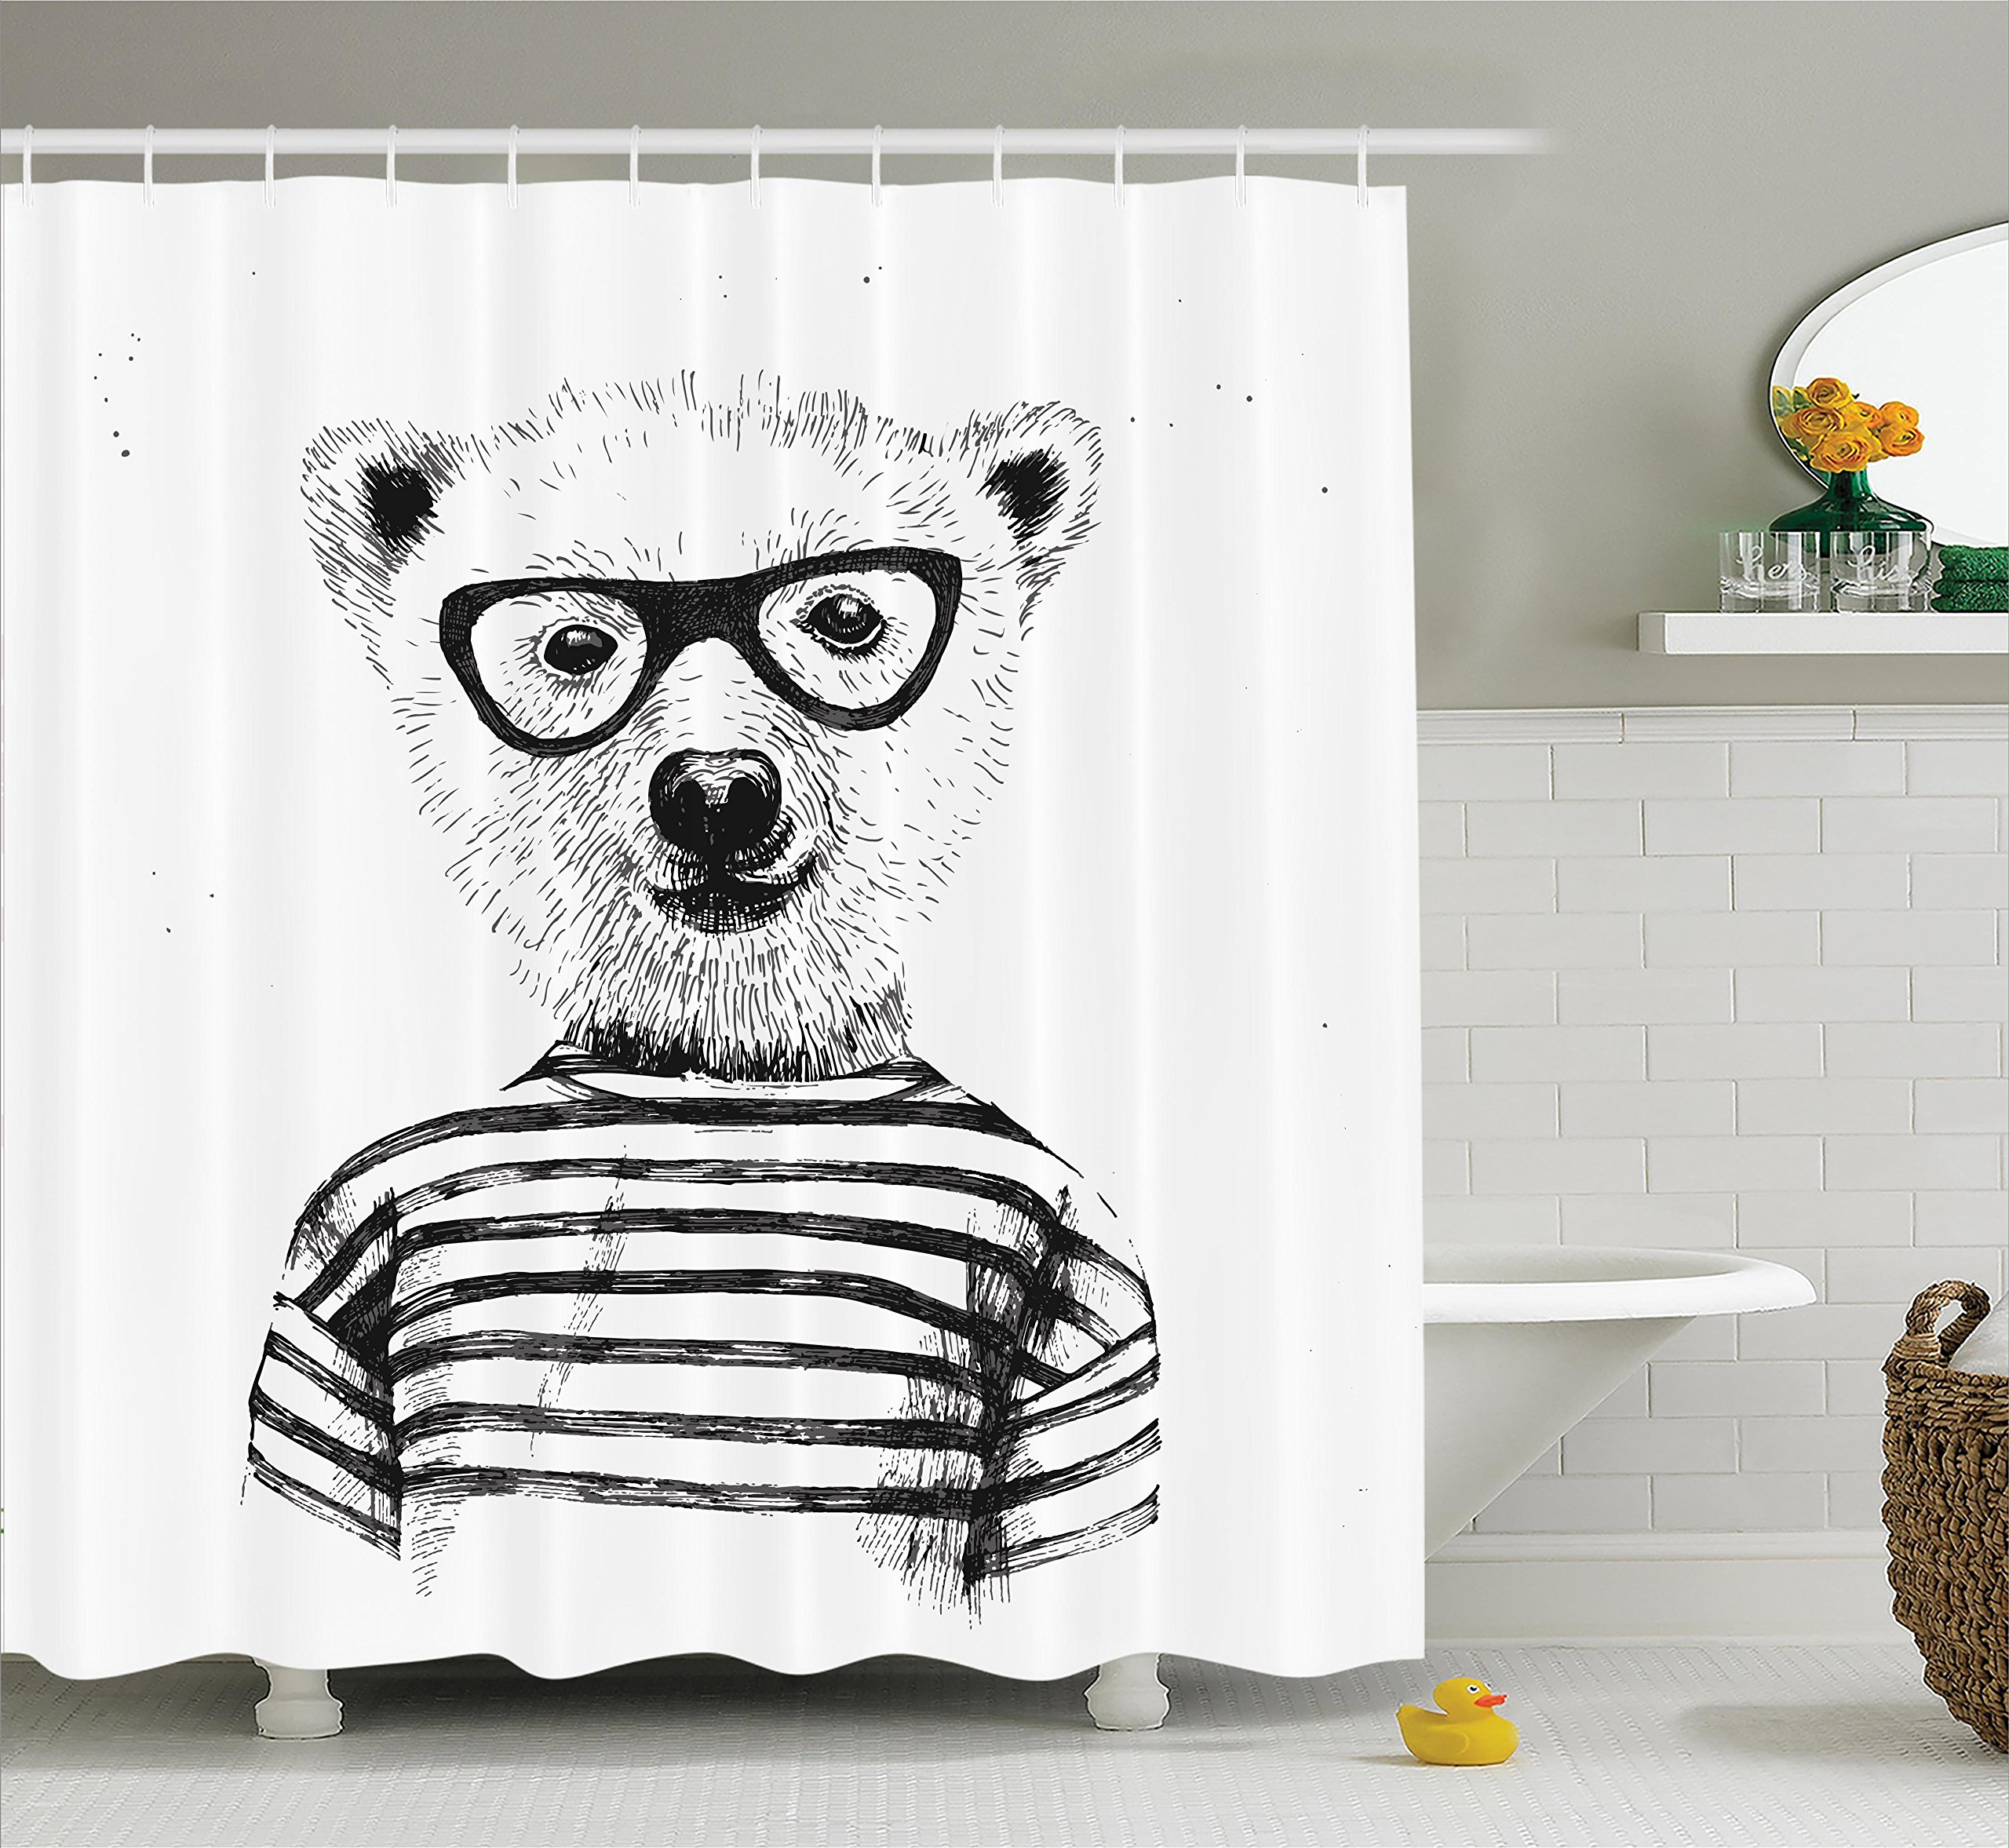 Ambesonne Apartment Decor Shower Curtain Set, Dressed up Hipster Nerd Smart Male Bear in Glasses Fun Character Animal Artful Print, Bathroom Accessories, 75 inches Long, Black White